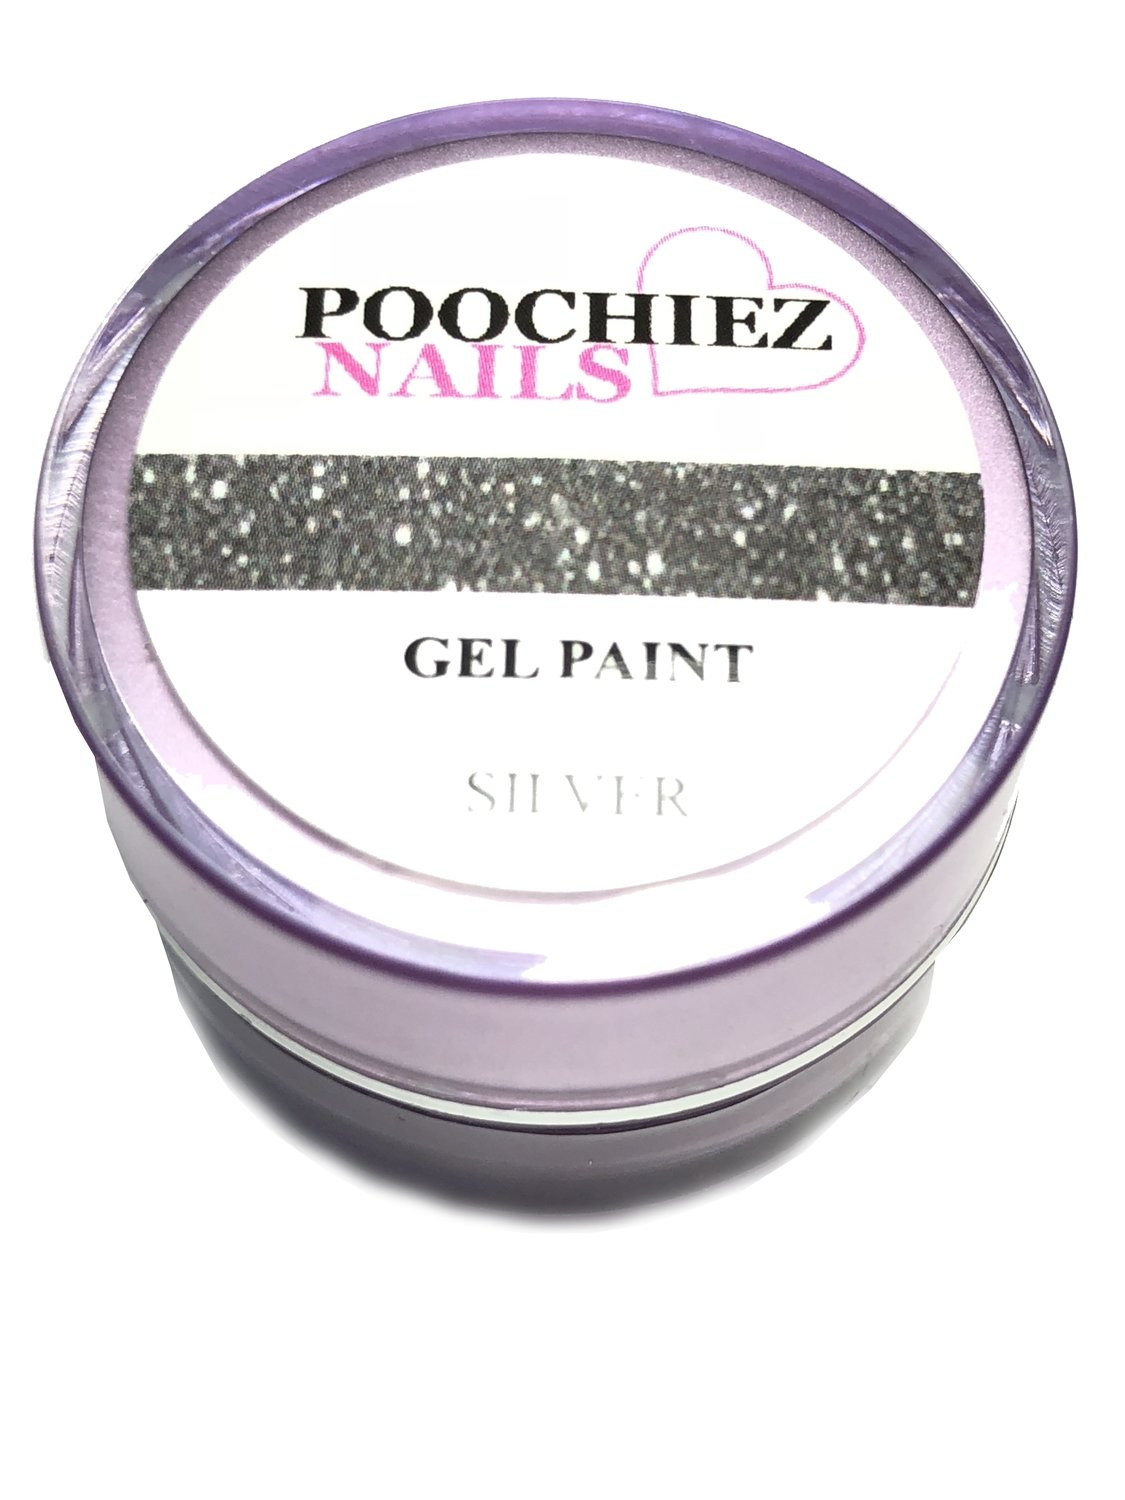 SILVER GEL PAINT 10 GRAMS